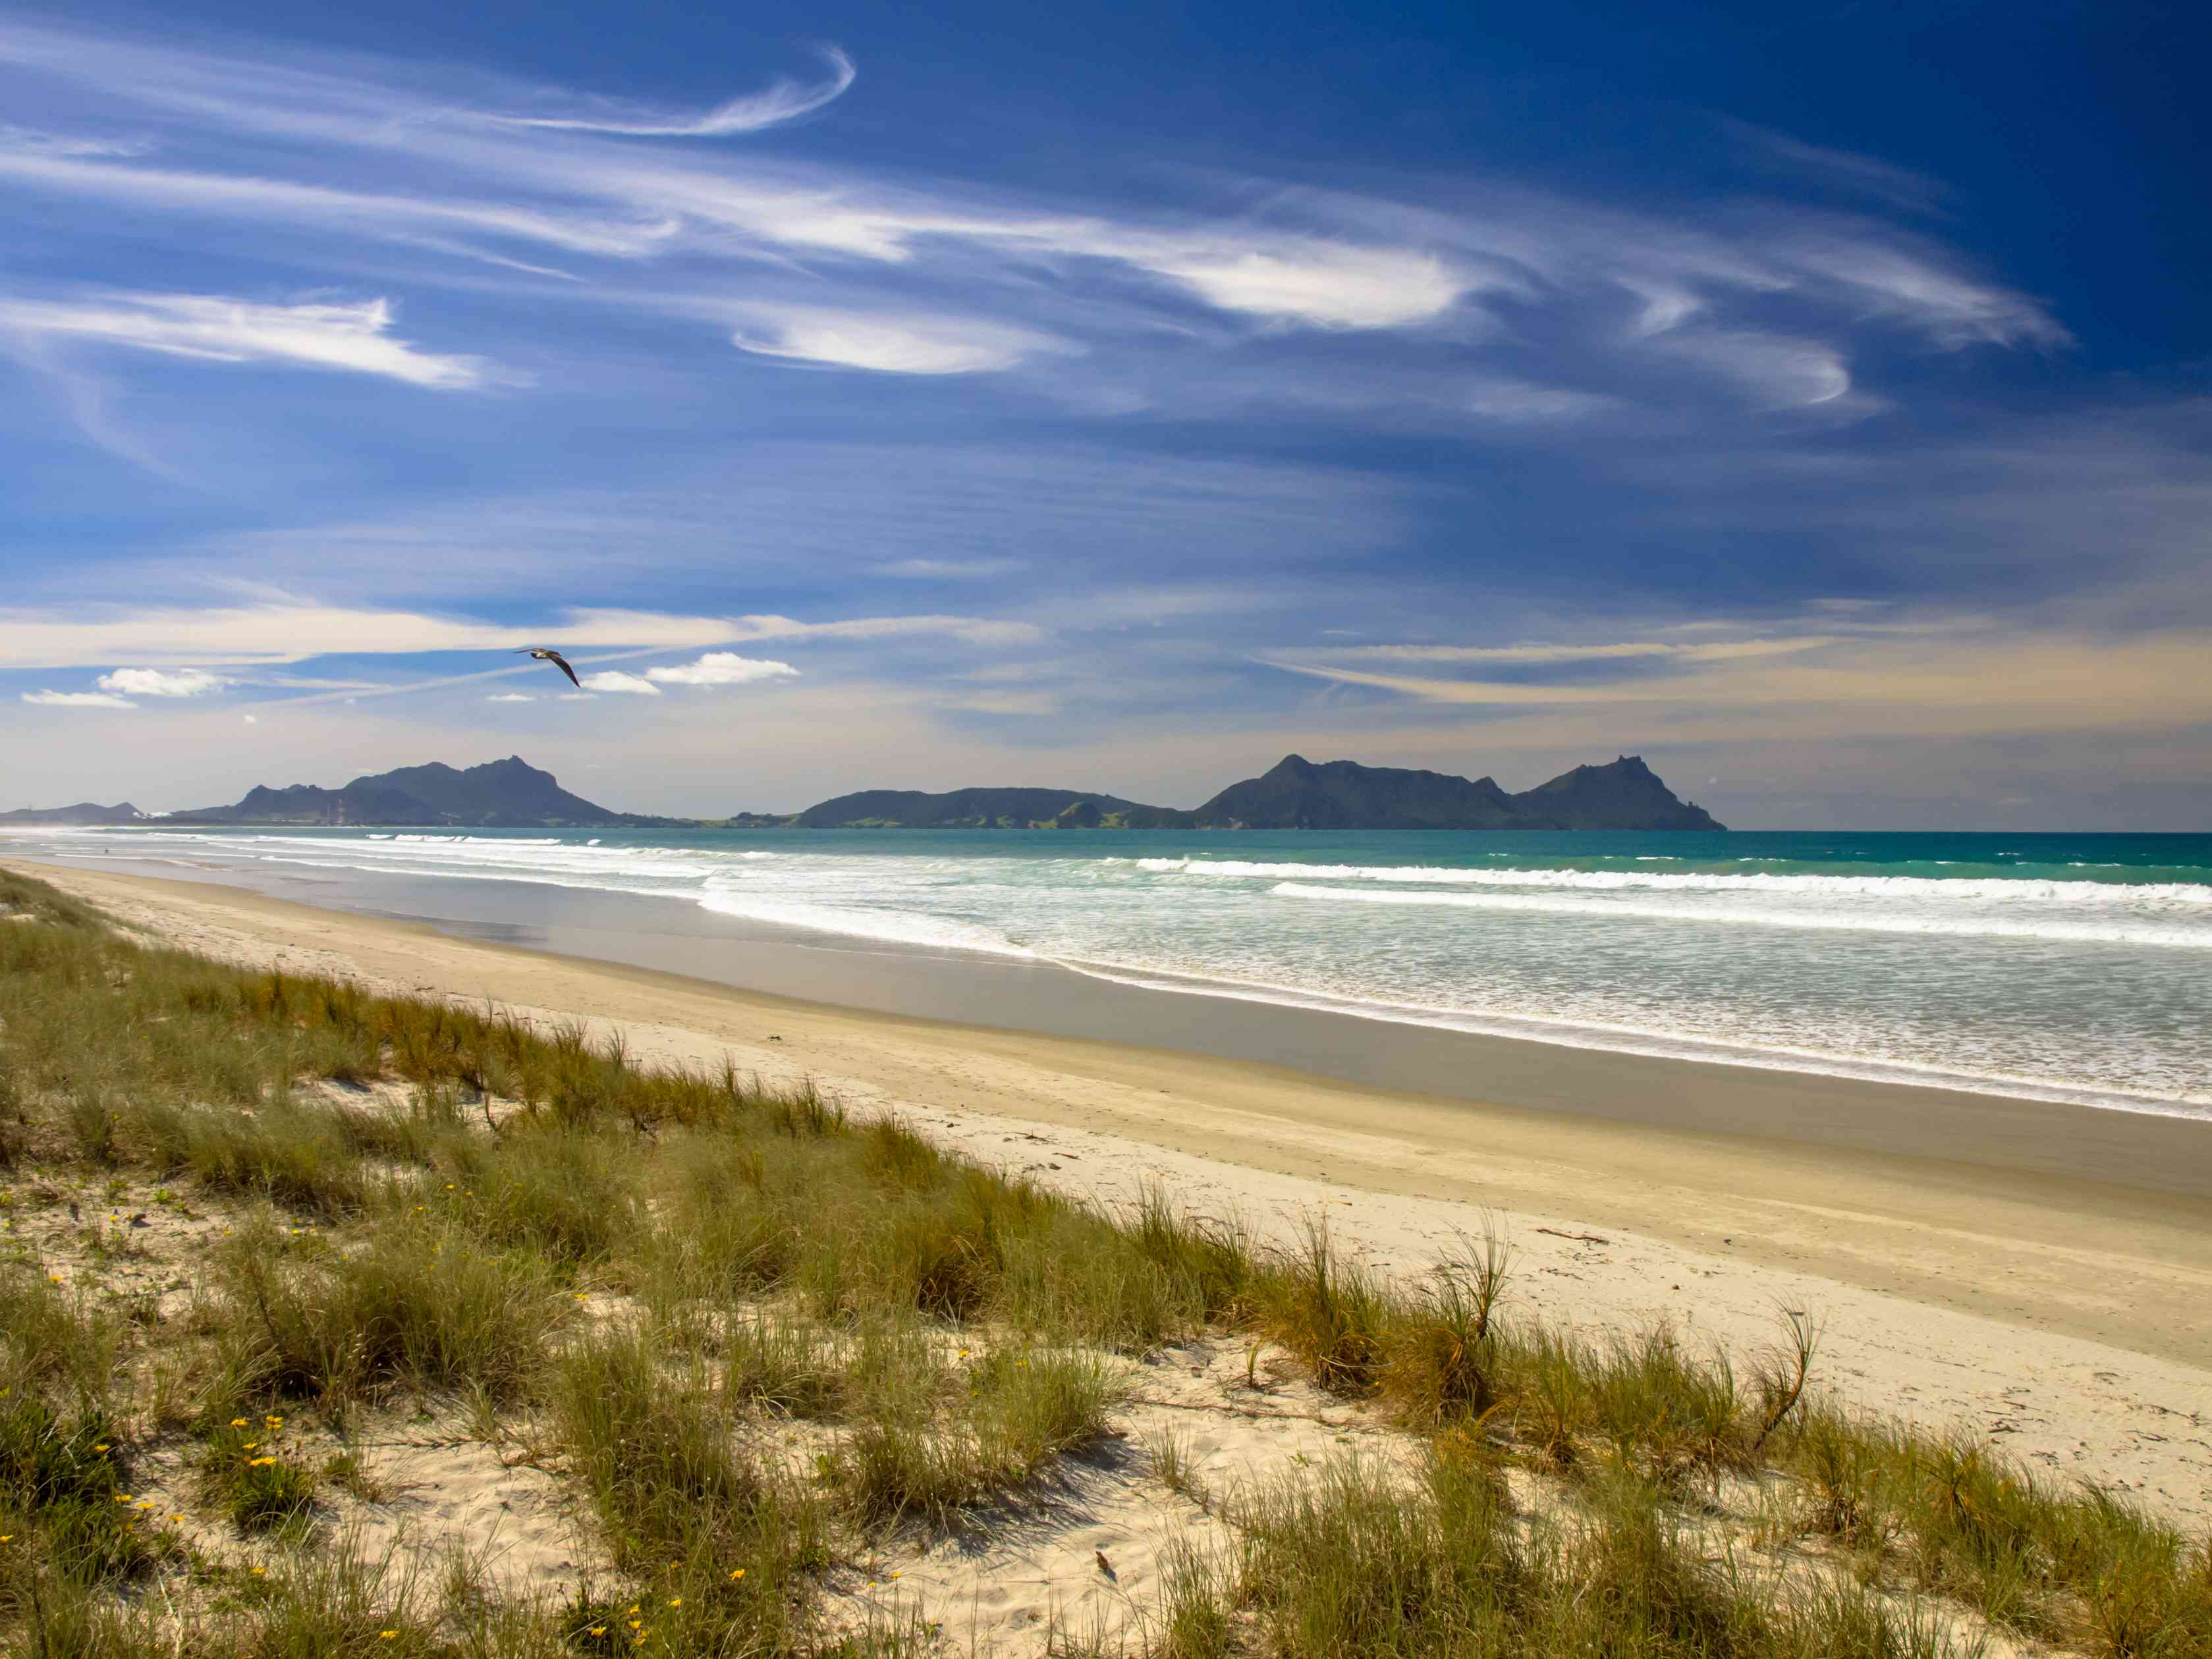 blue sky with swirling clouds above waves breaking on a golden sand beach with grass in foreground